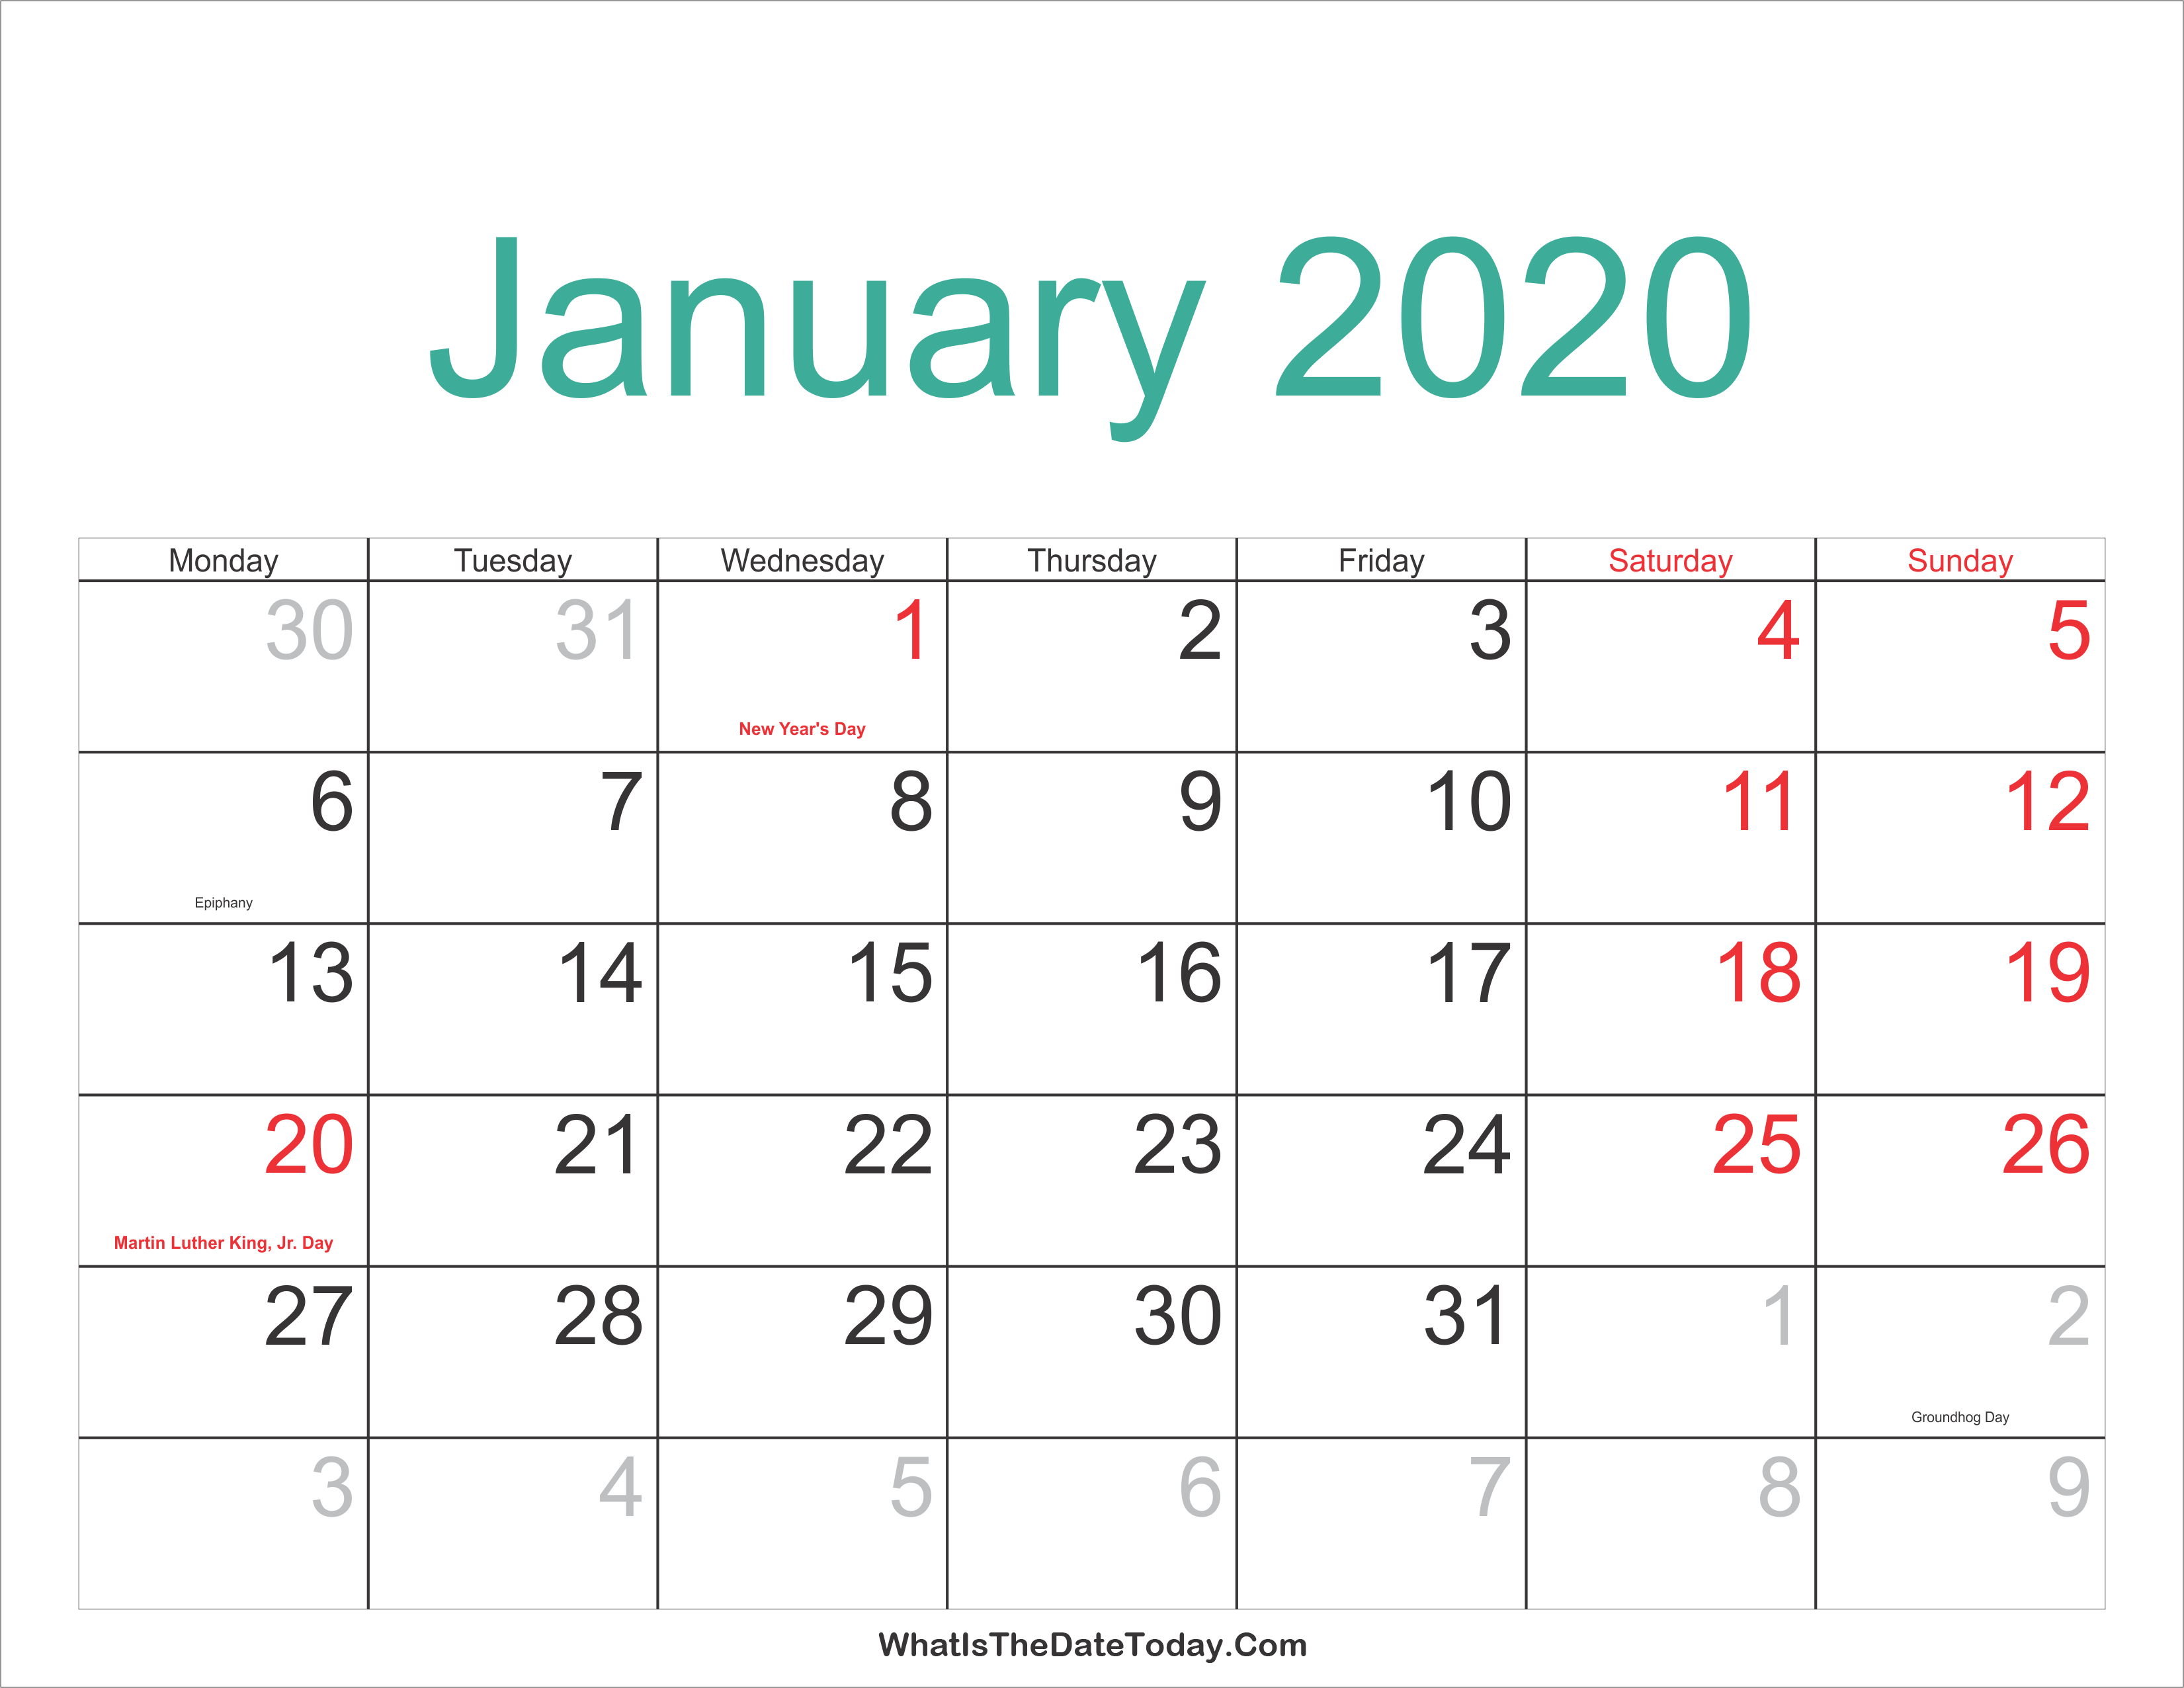 Martin Luther King Day 2020 Calendar January 2020 Calendar Printable with Holidays | Whatisthedatetoday.Com